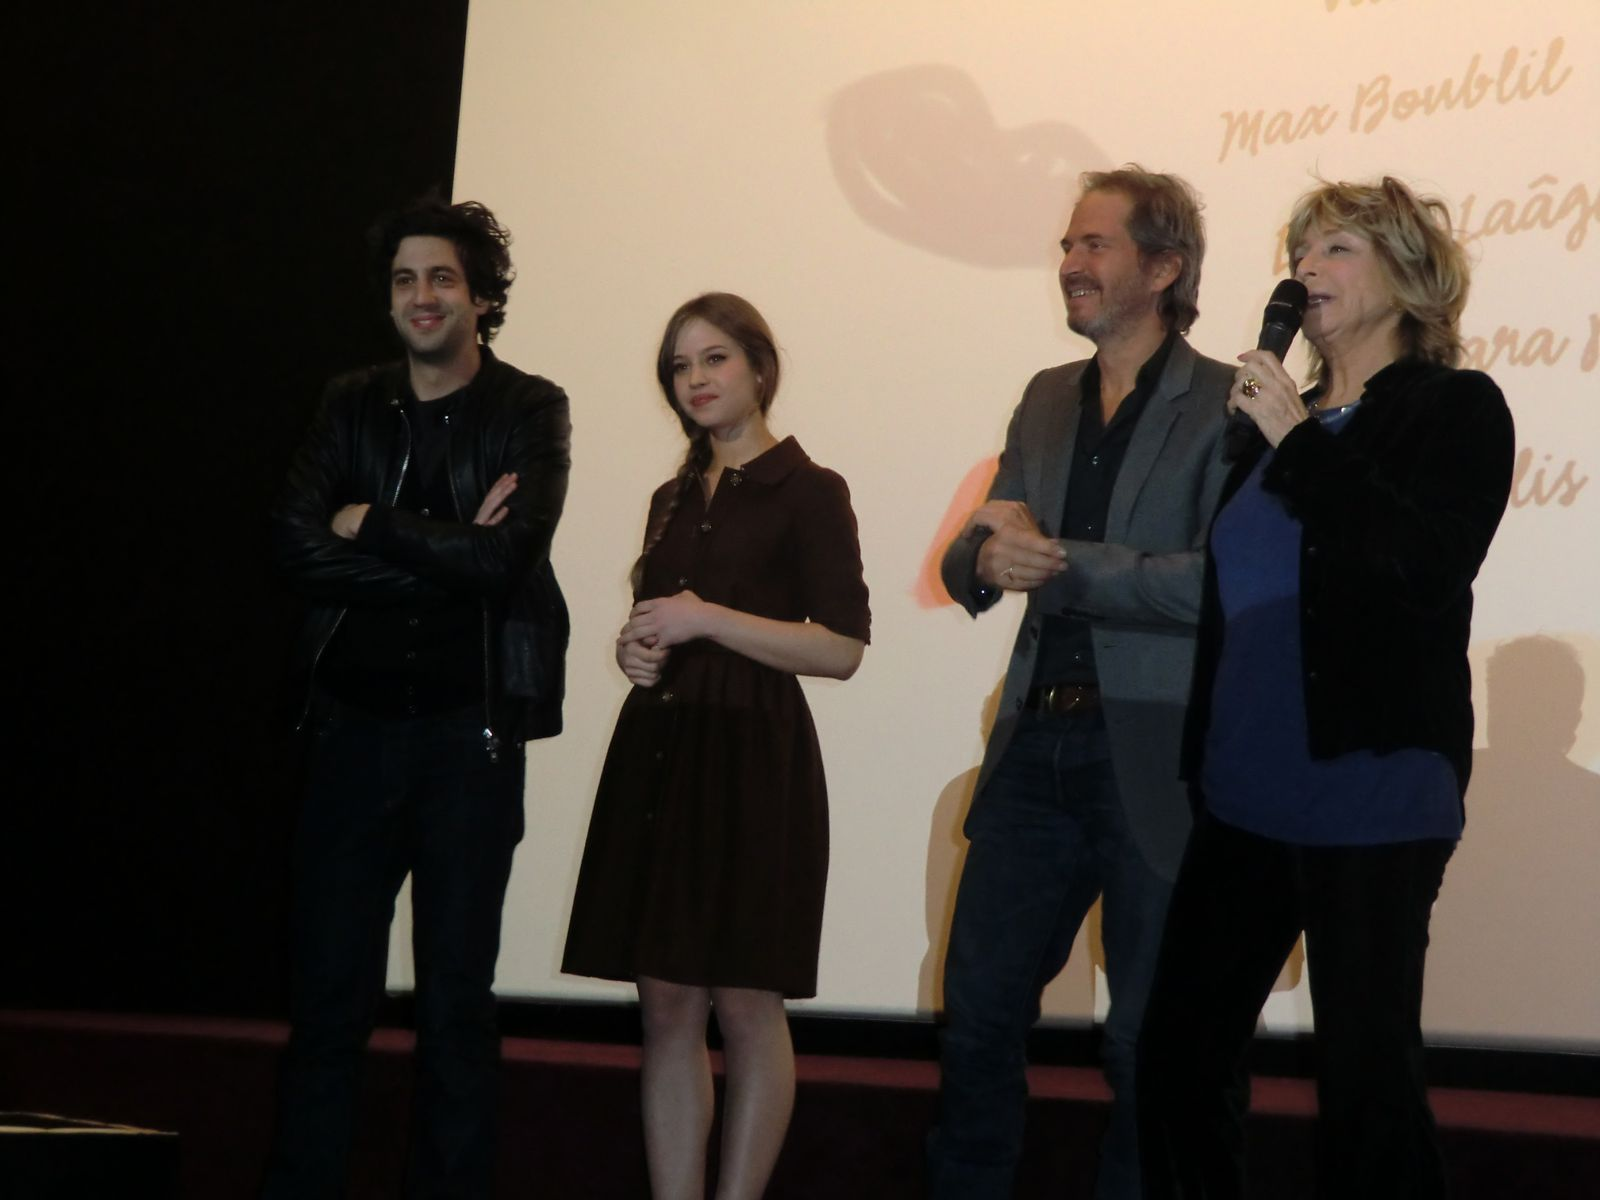 Max Boublil, Lou de Laâge, Christopher Thompson et Danièle Thompson